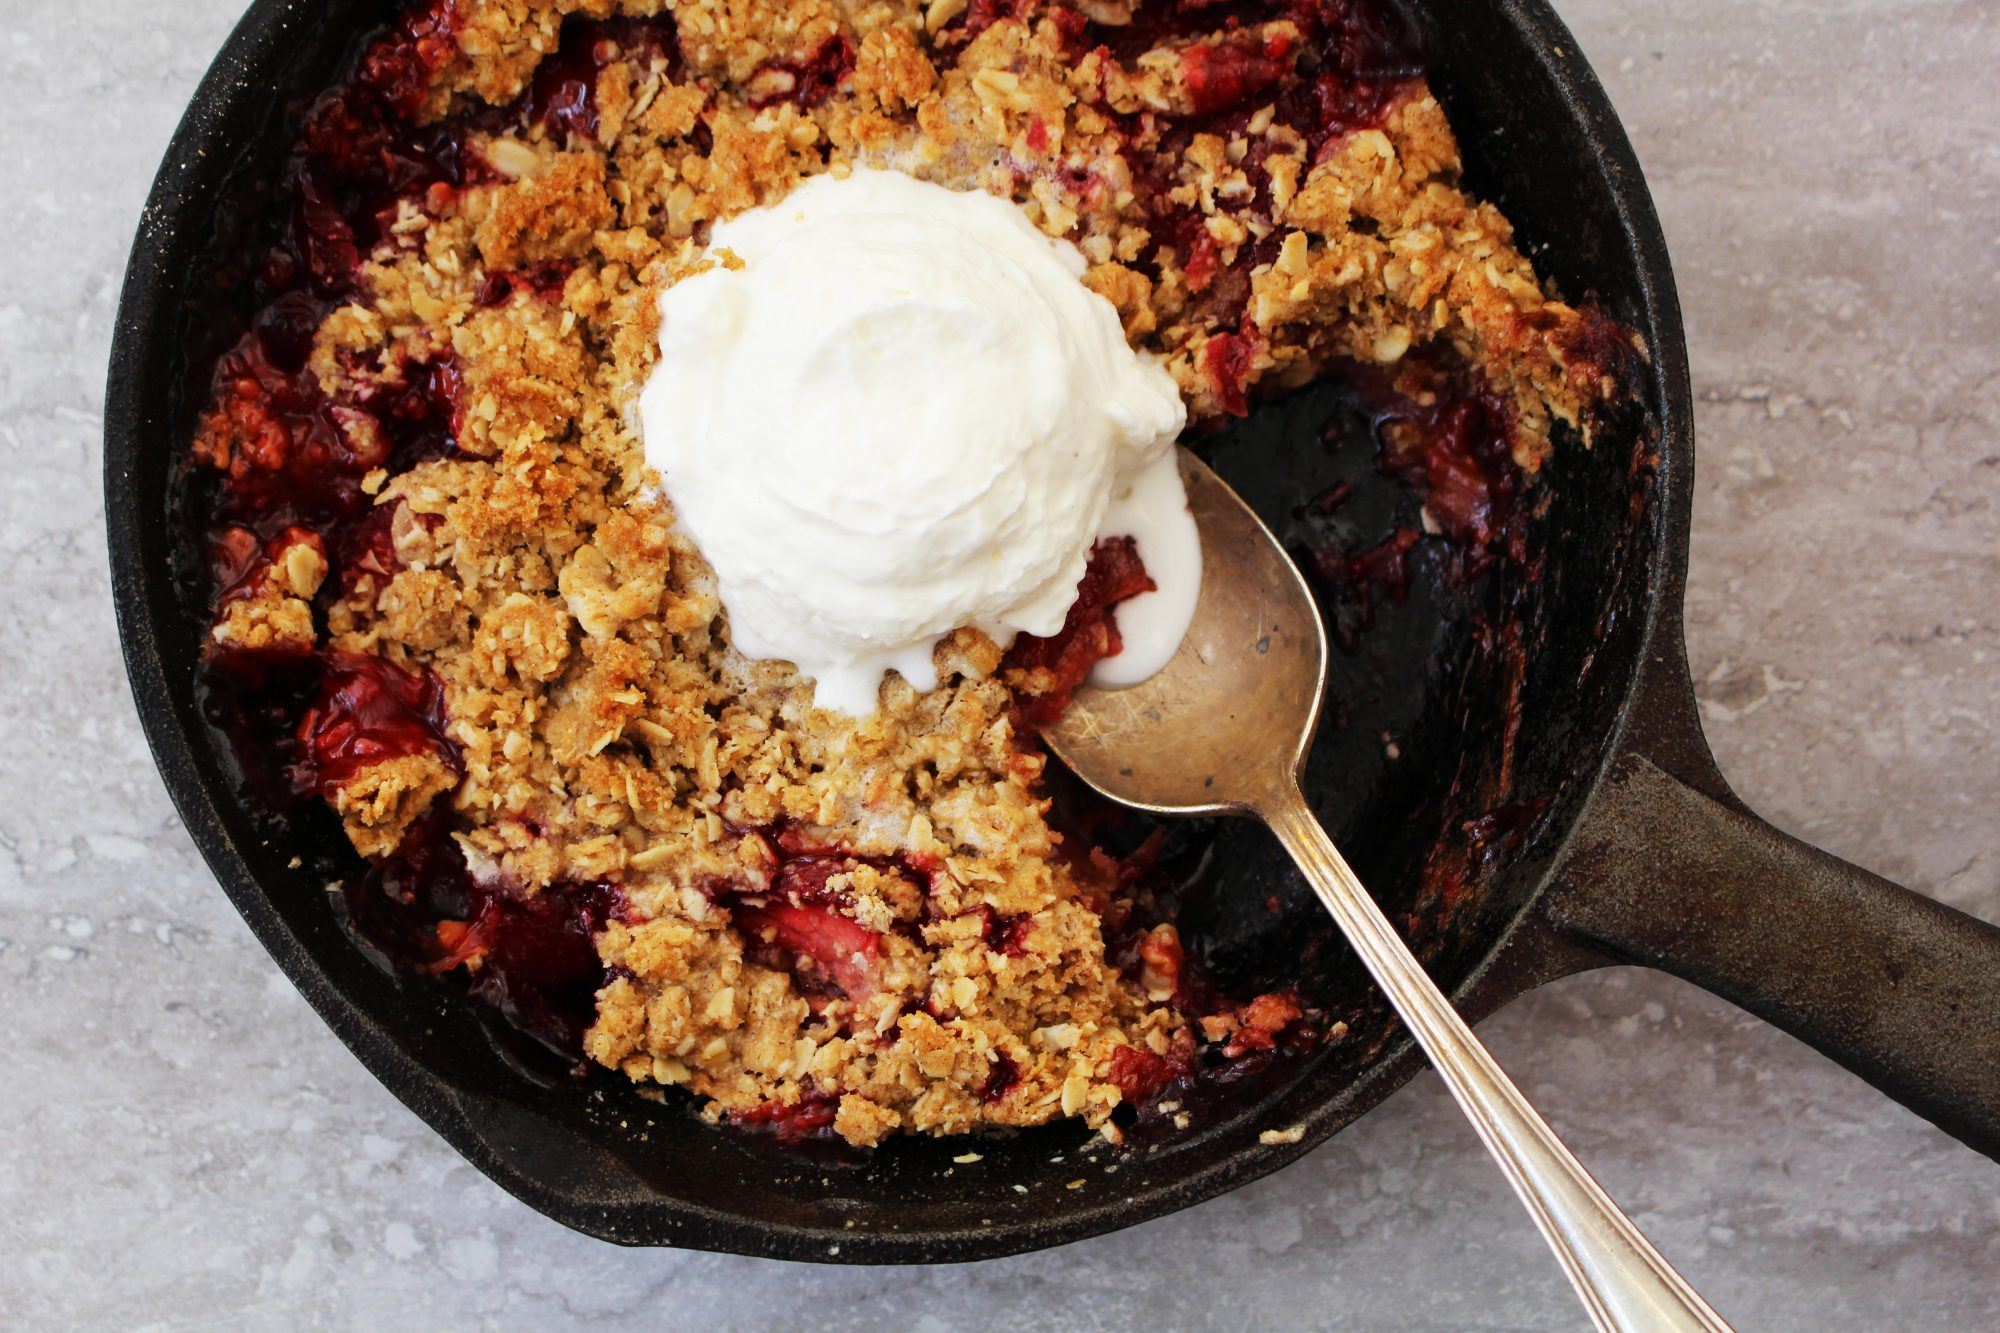 Strawberry-rhubarb crisp 1